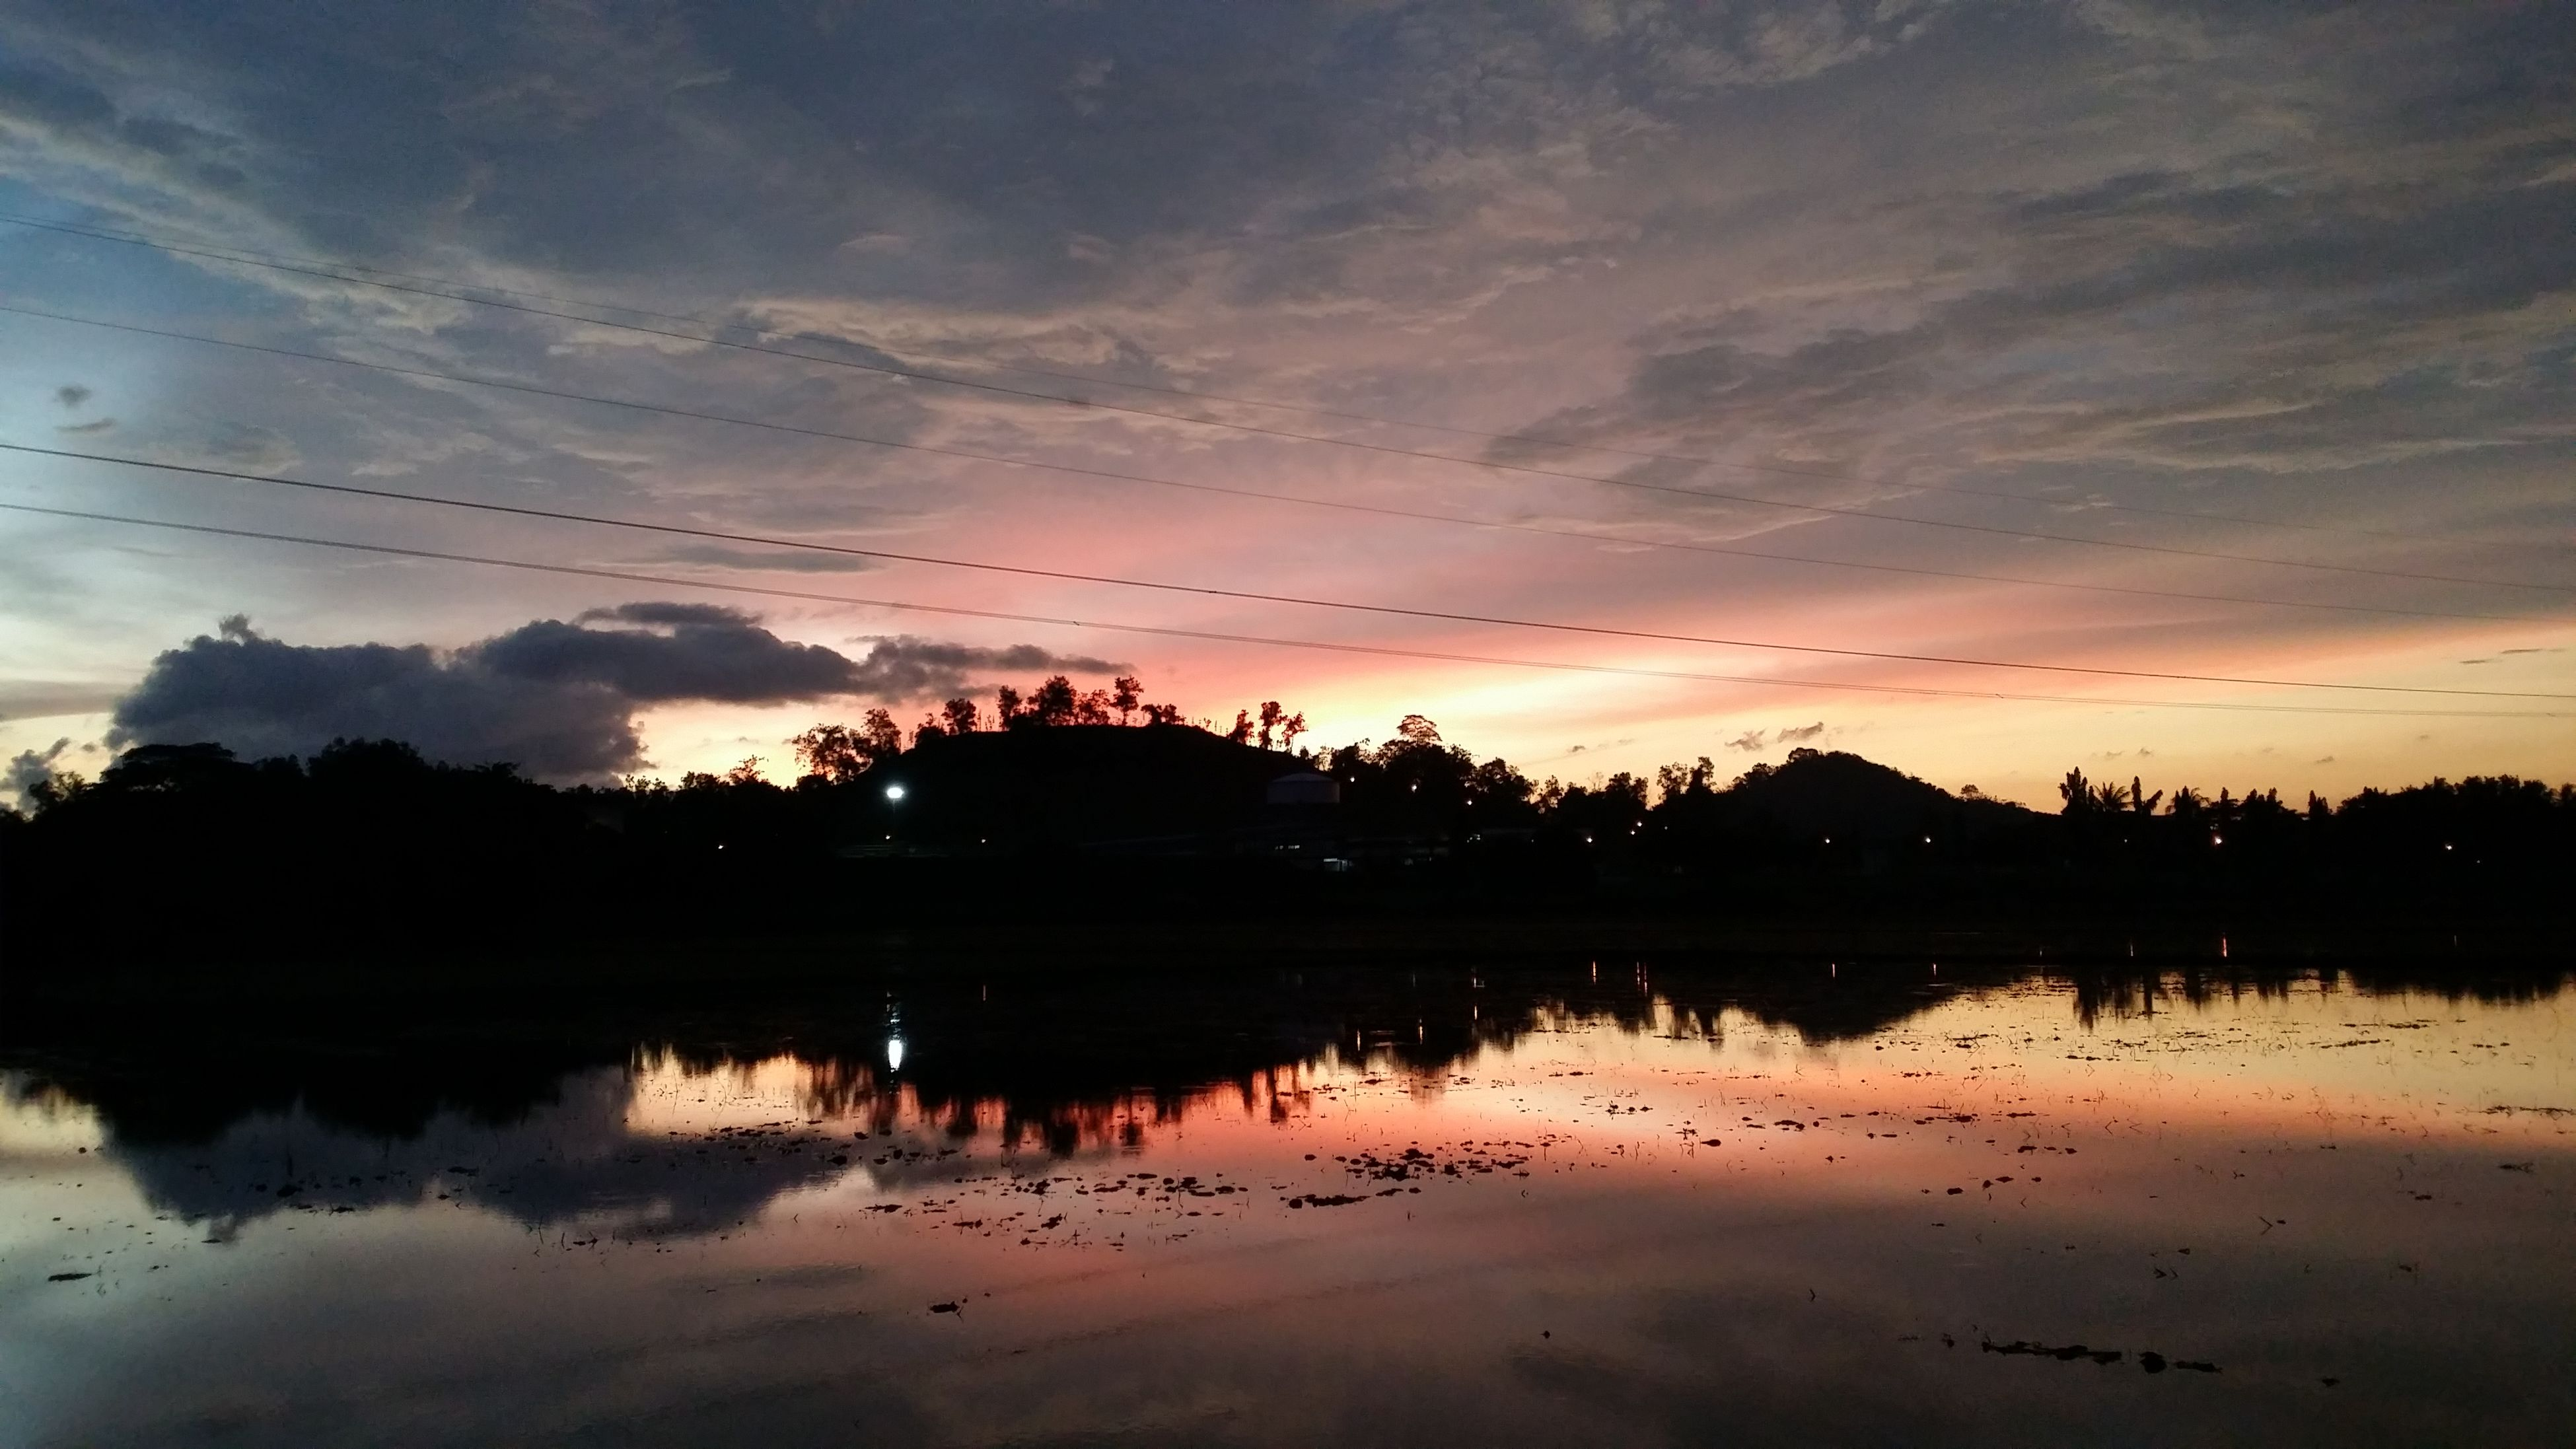 reflection, sunset, water, tranquil scene, tranquility, scenics, sky, lake, silhouette, beauty in nature, cloud - sky, tree, idyllic, nature, cloud, waterfront, orange color, standing water, calm, dusk